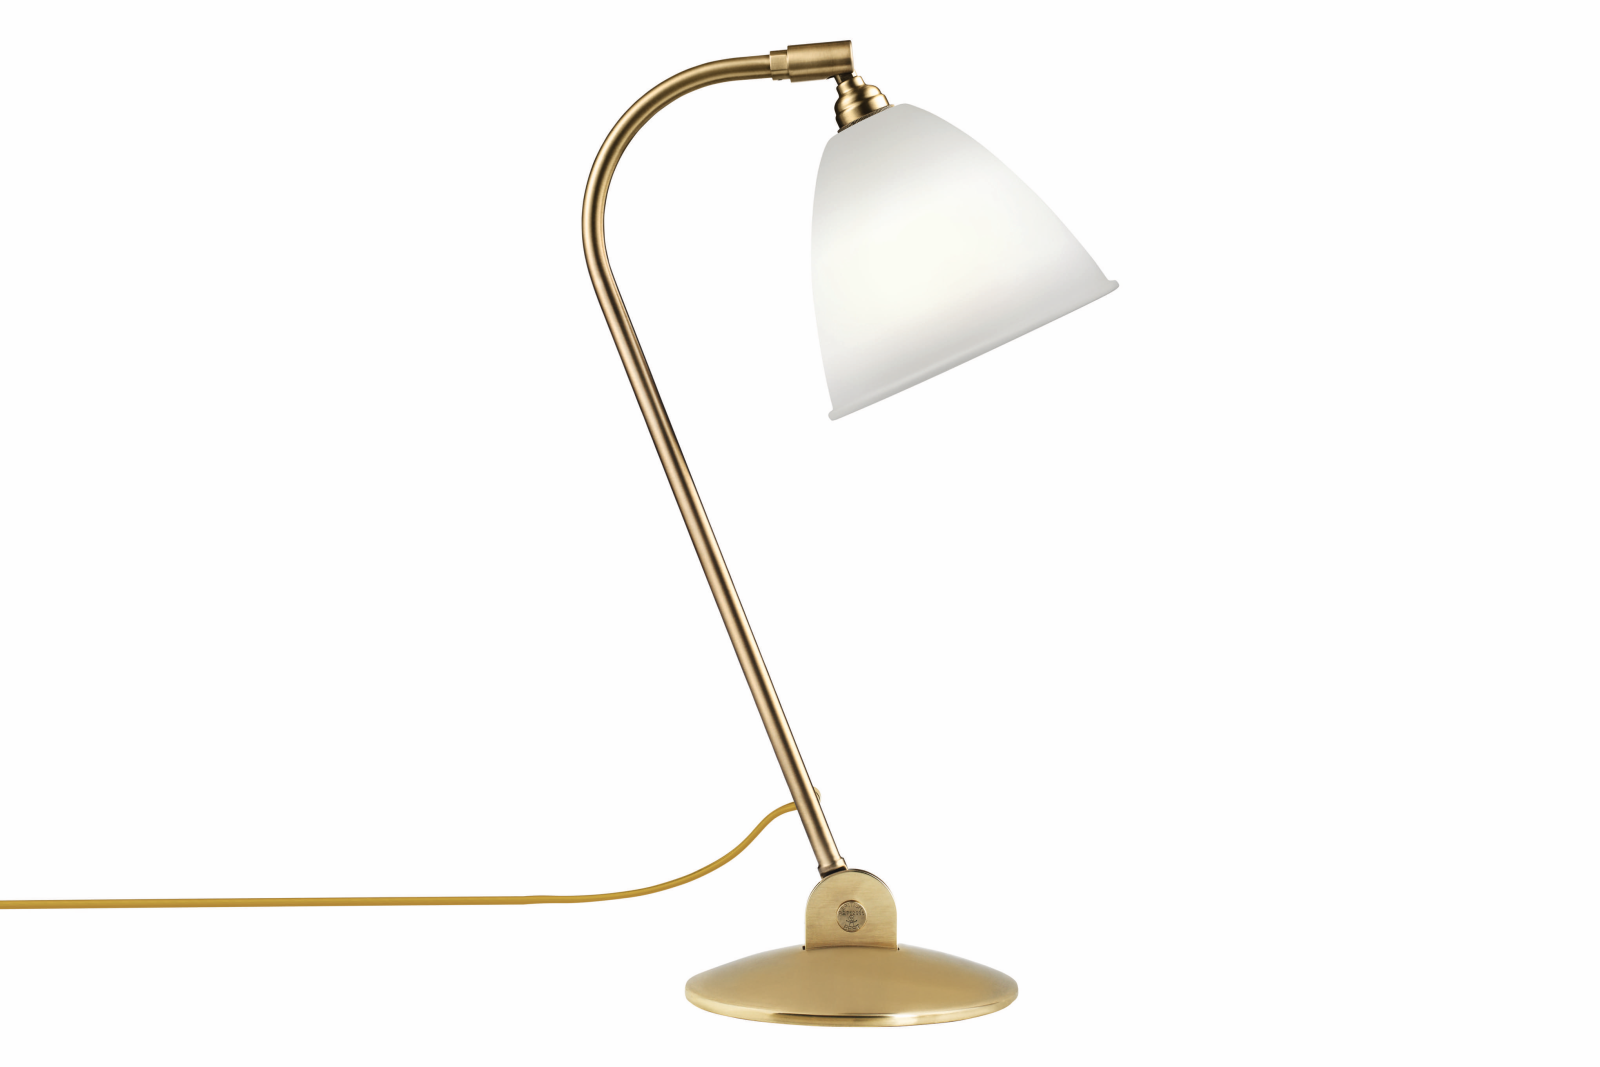 Bestlite BL2 Table Lamp Bone China and Brass